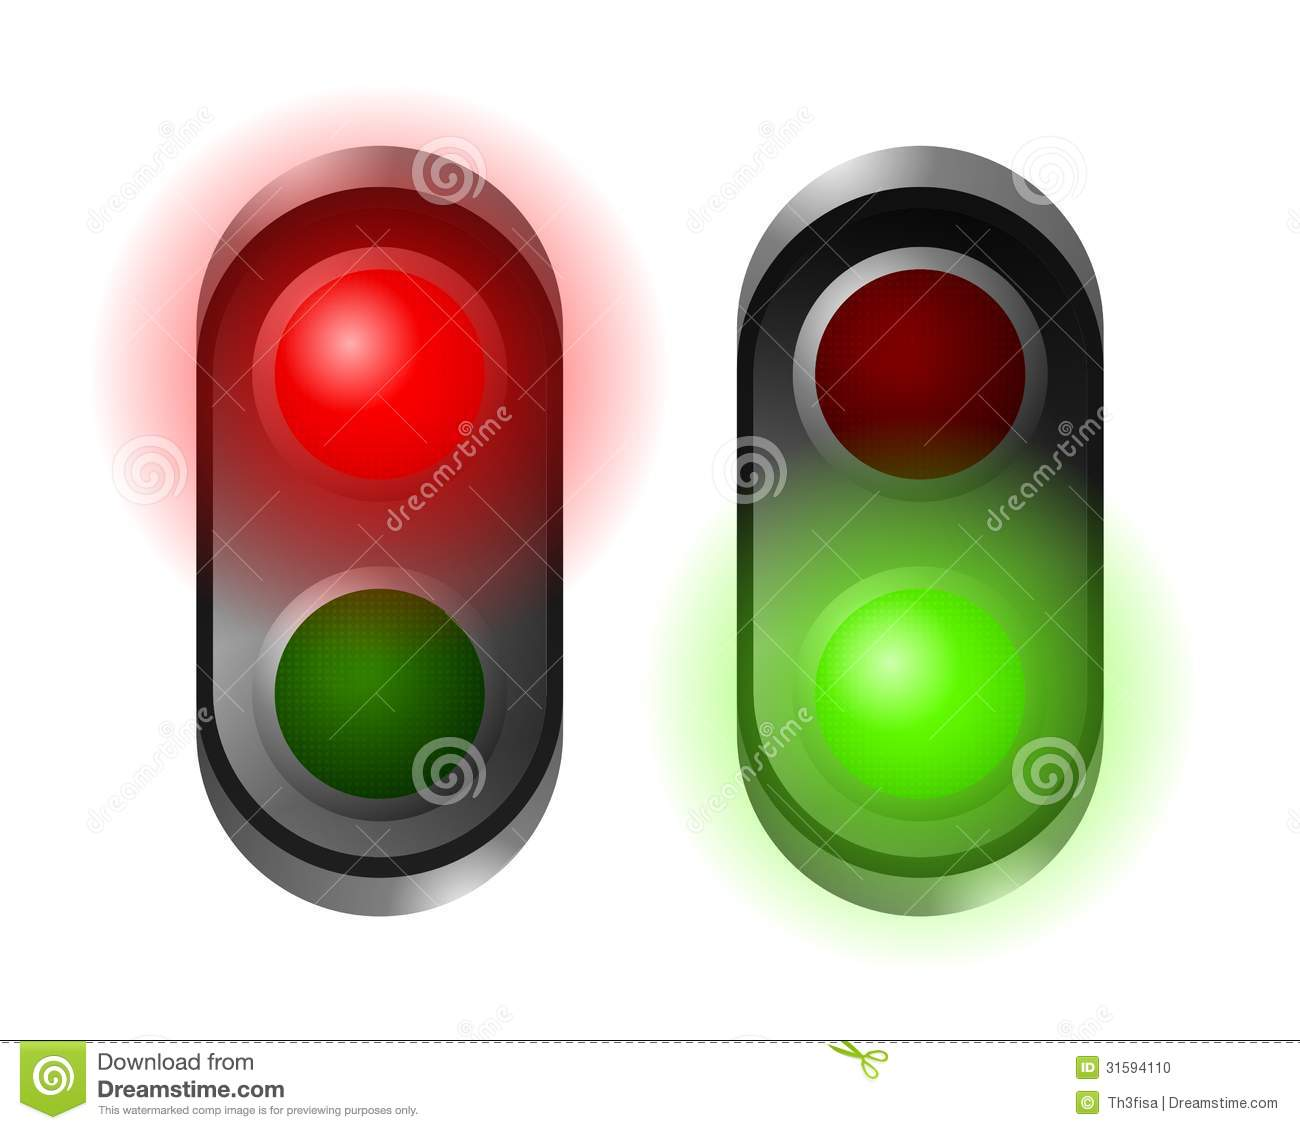 green light Green light is a song by new zealand singer lorde, from her second studio album melodrama (2017) universal music new zealand released the song on 2 march 2017 as the album's lead single lorde co-wrote and co-produced the song with jack antonoff, with additional writing by joel little and production assistance from frank dukes and kuk harrell.